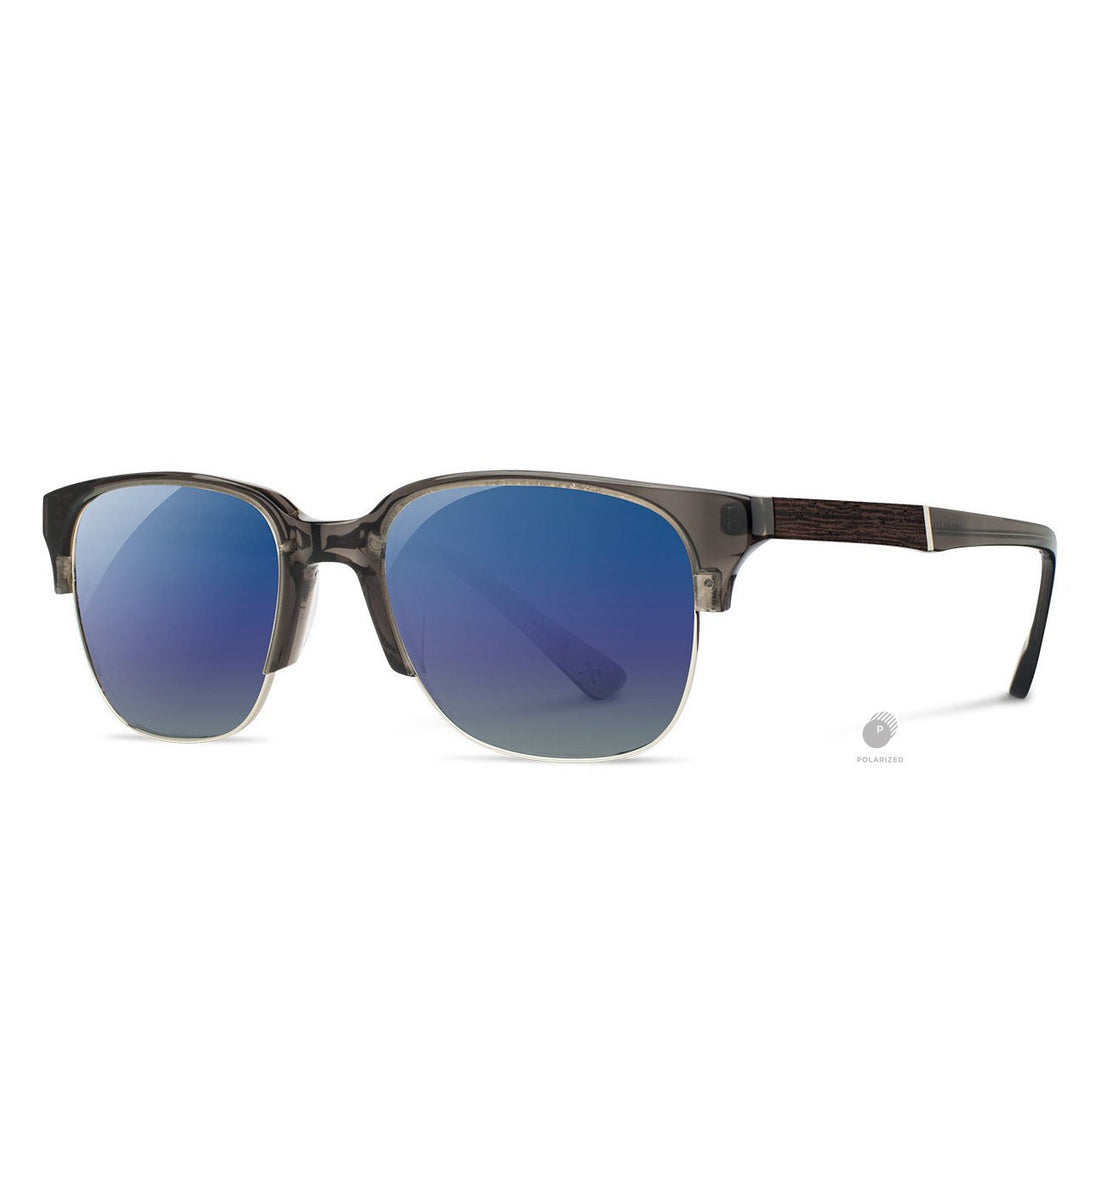 Shwood Newport 52mm, Charcoal // Elm Burl - Blue Flash Polarized - Sunglasses - Iron and Resin